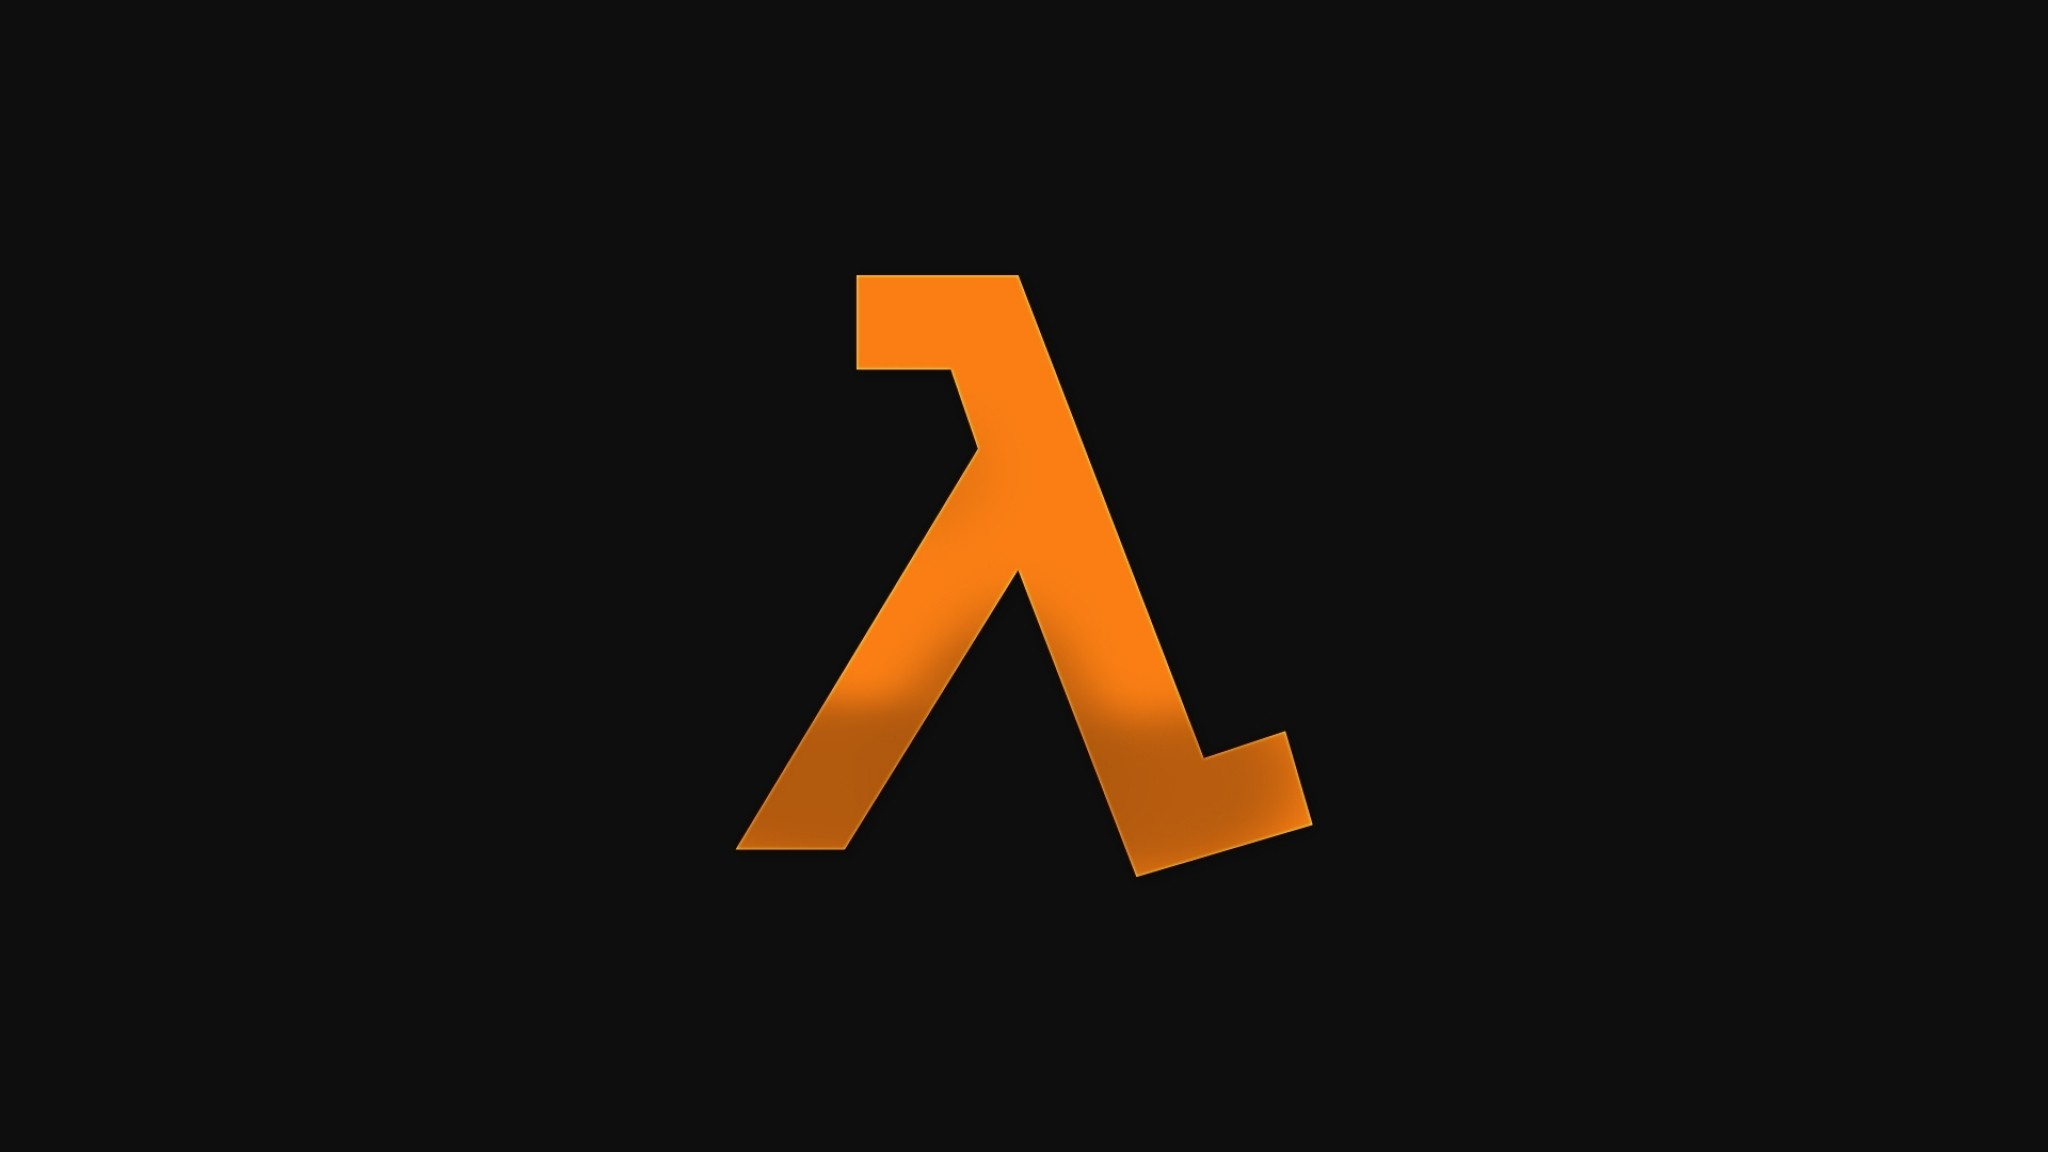 2048x1152 Preview wallpaper half-life, emblem, orange, background